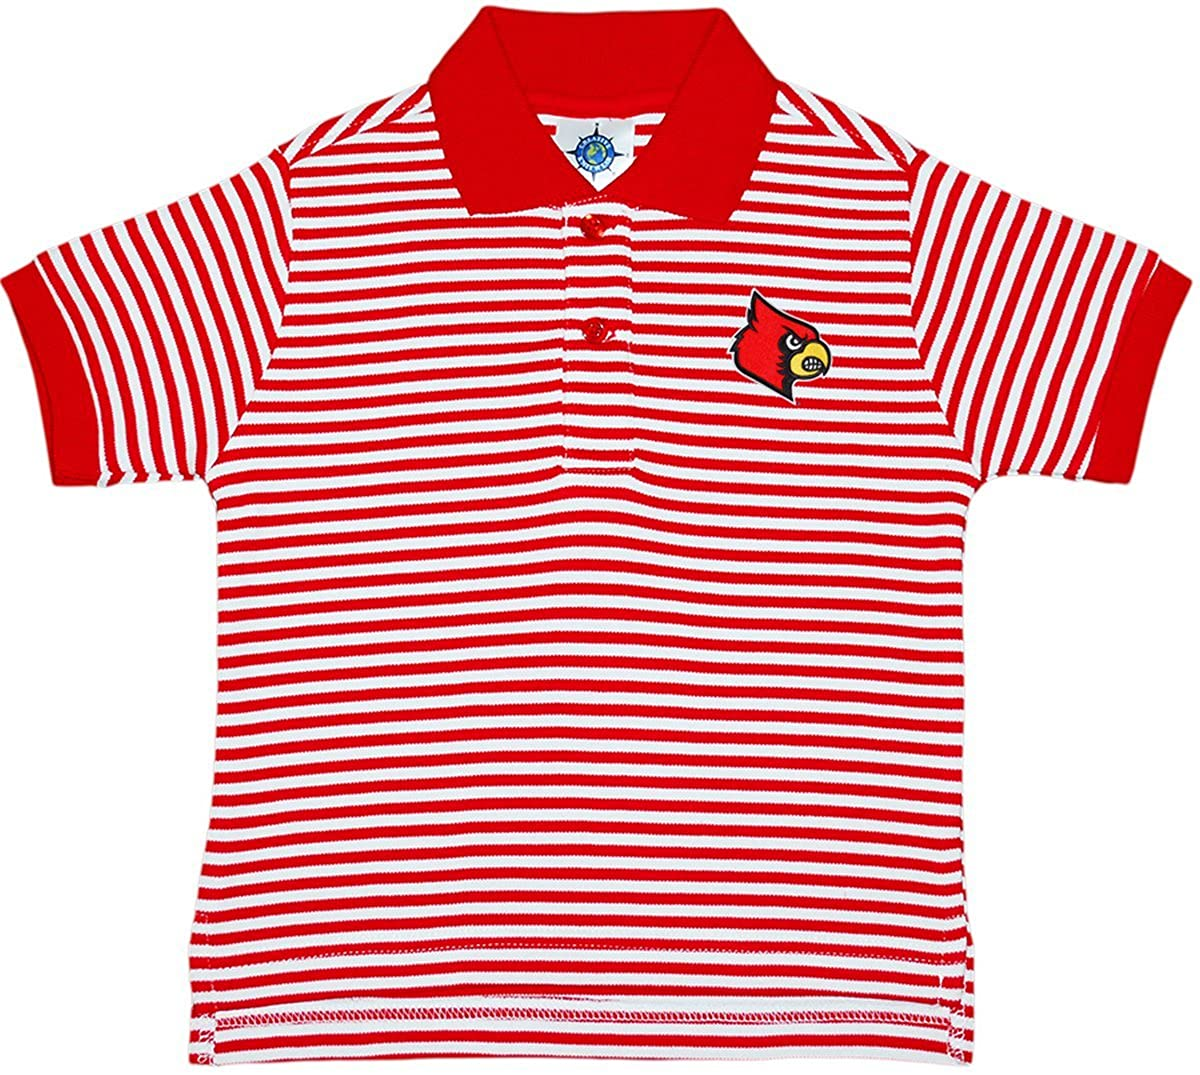 Creative Knitwear University of Louisville Cardinals Striped Polo Shirt Red/White 3T